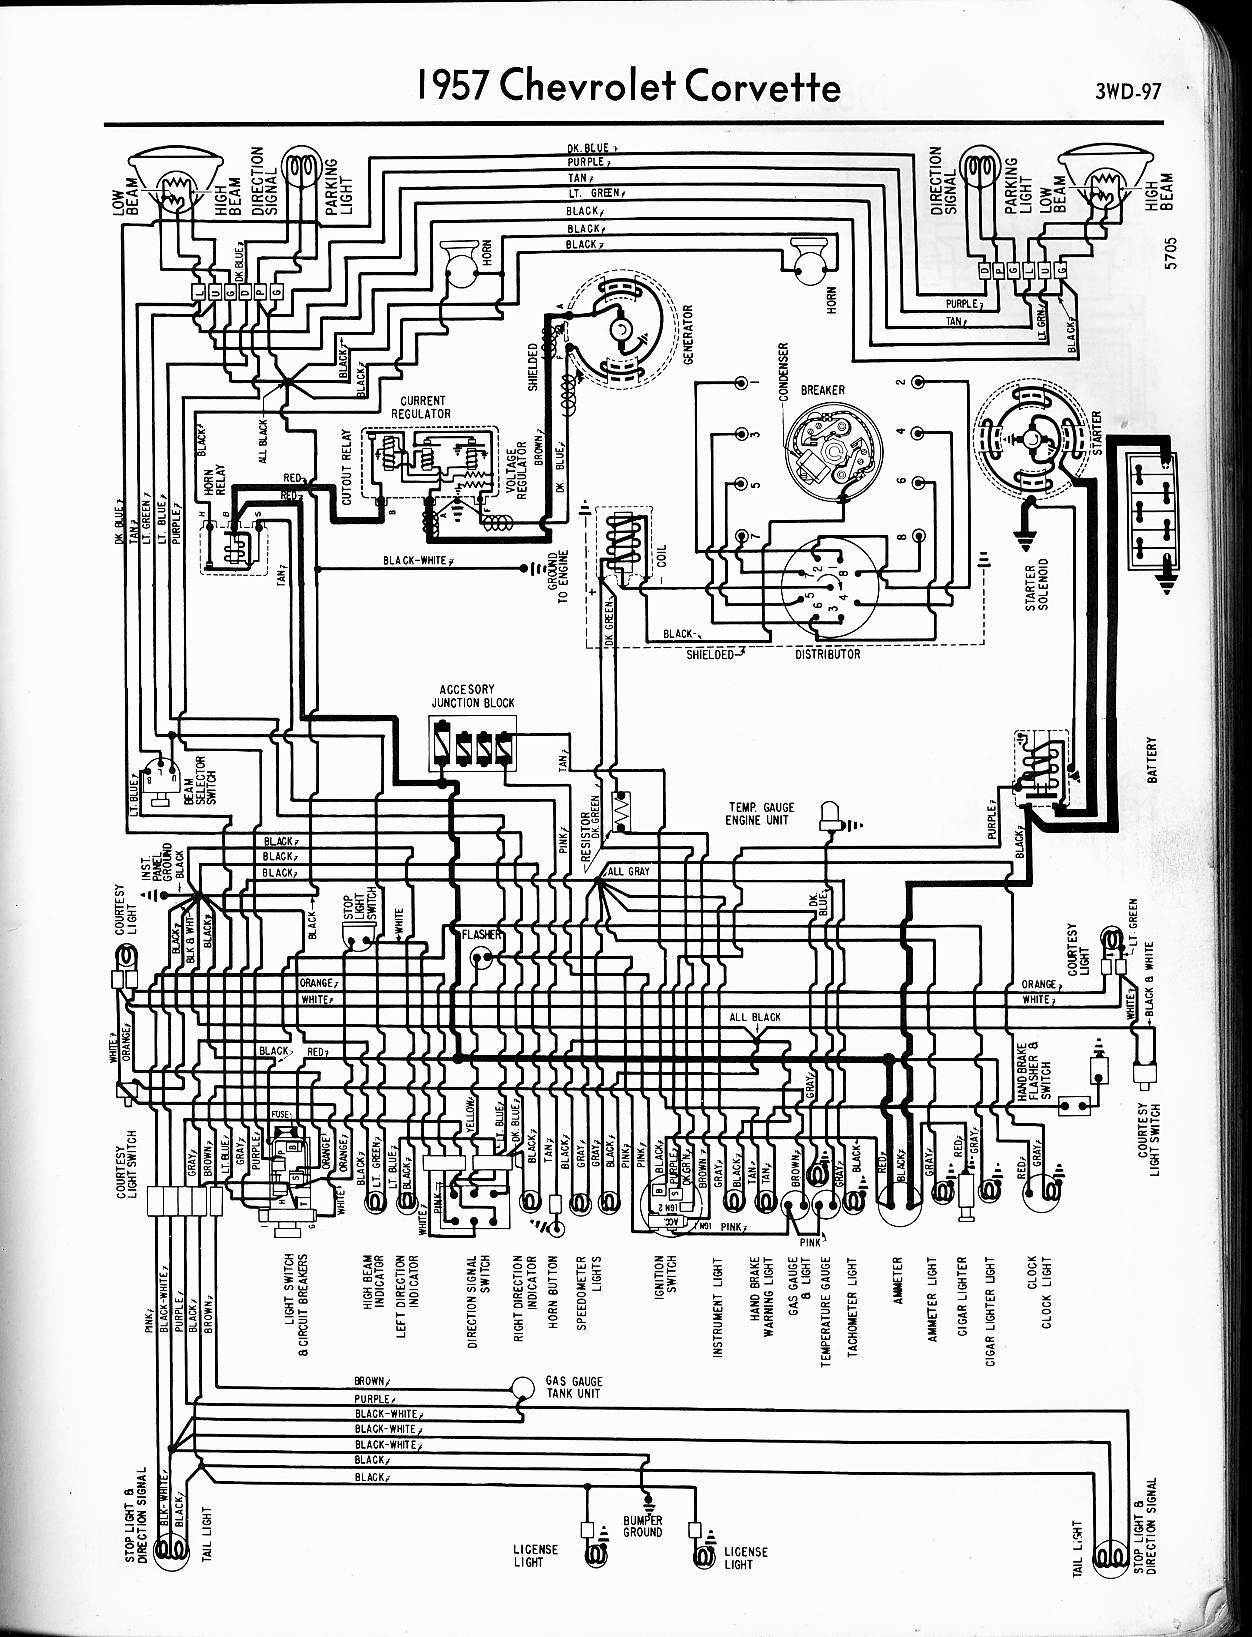 MWireChev57_3WD 097 57 65 chevy wiring diagrams 1957 chevy headlight switch wiring diagram at soozxer.org